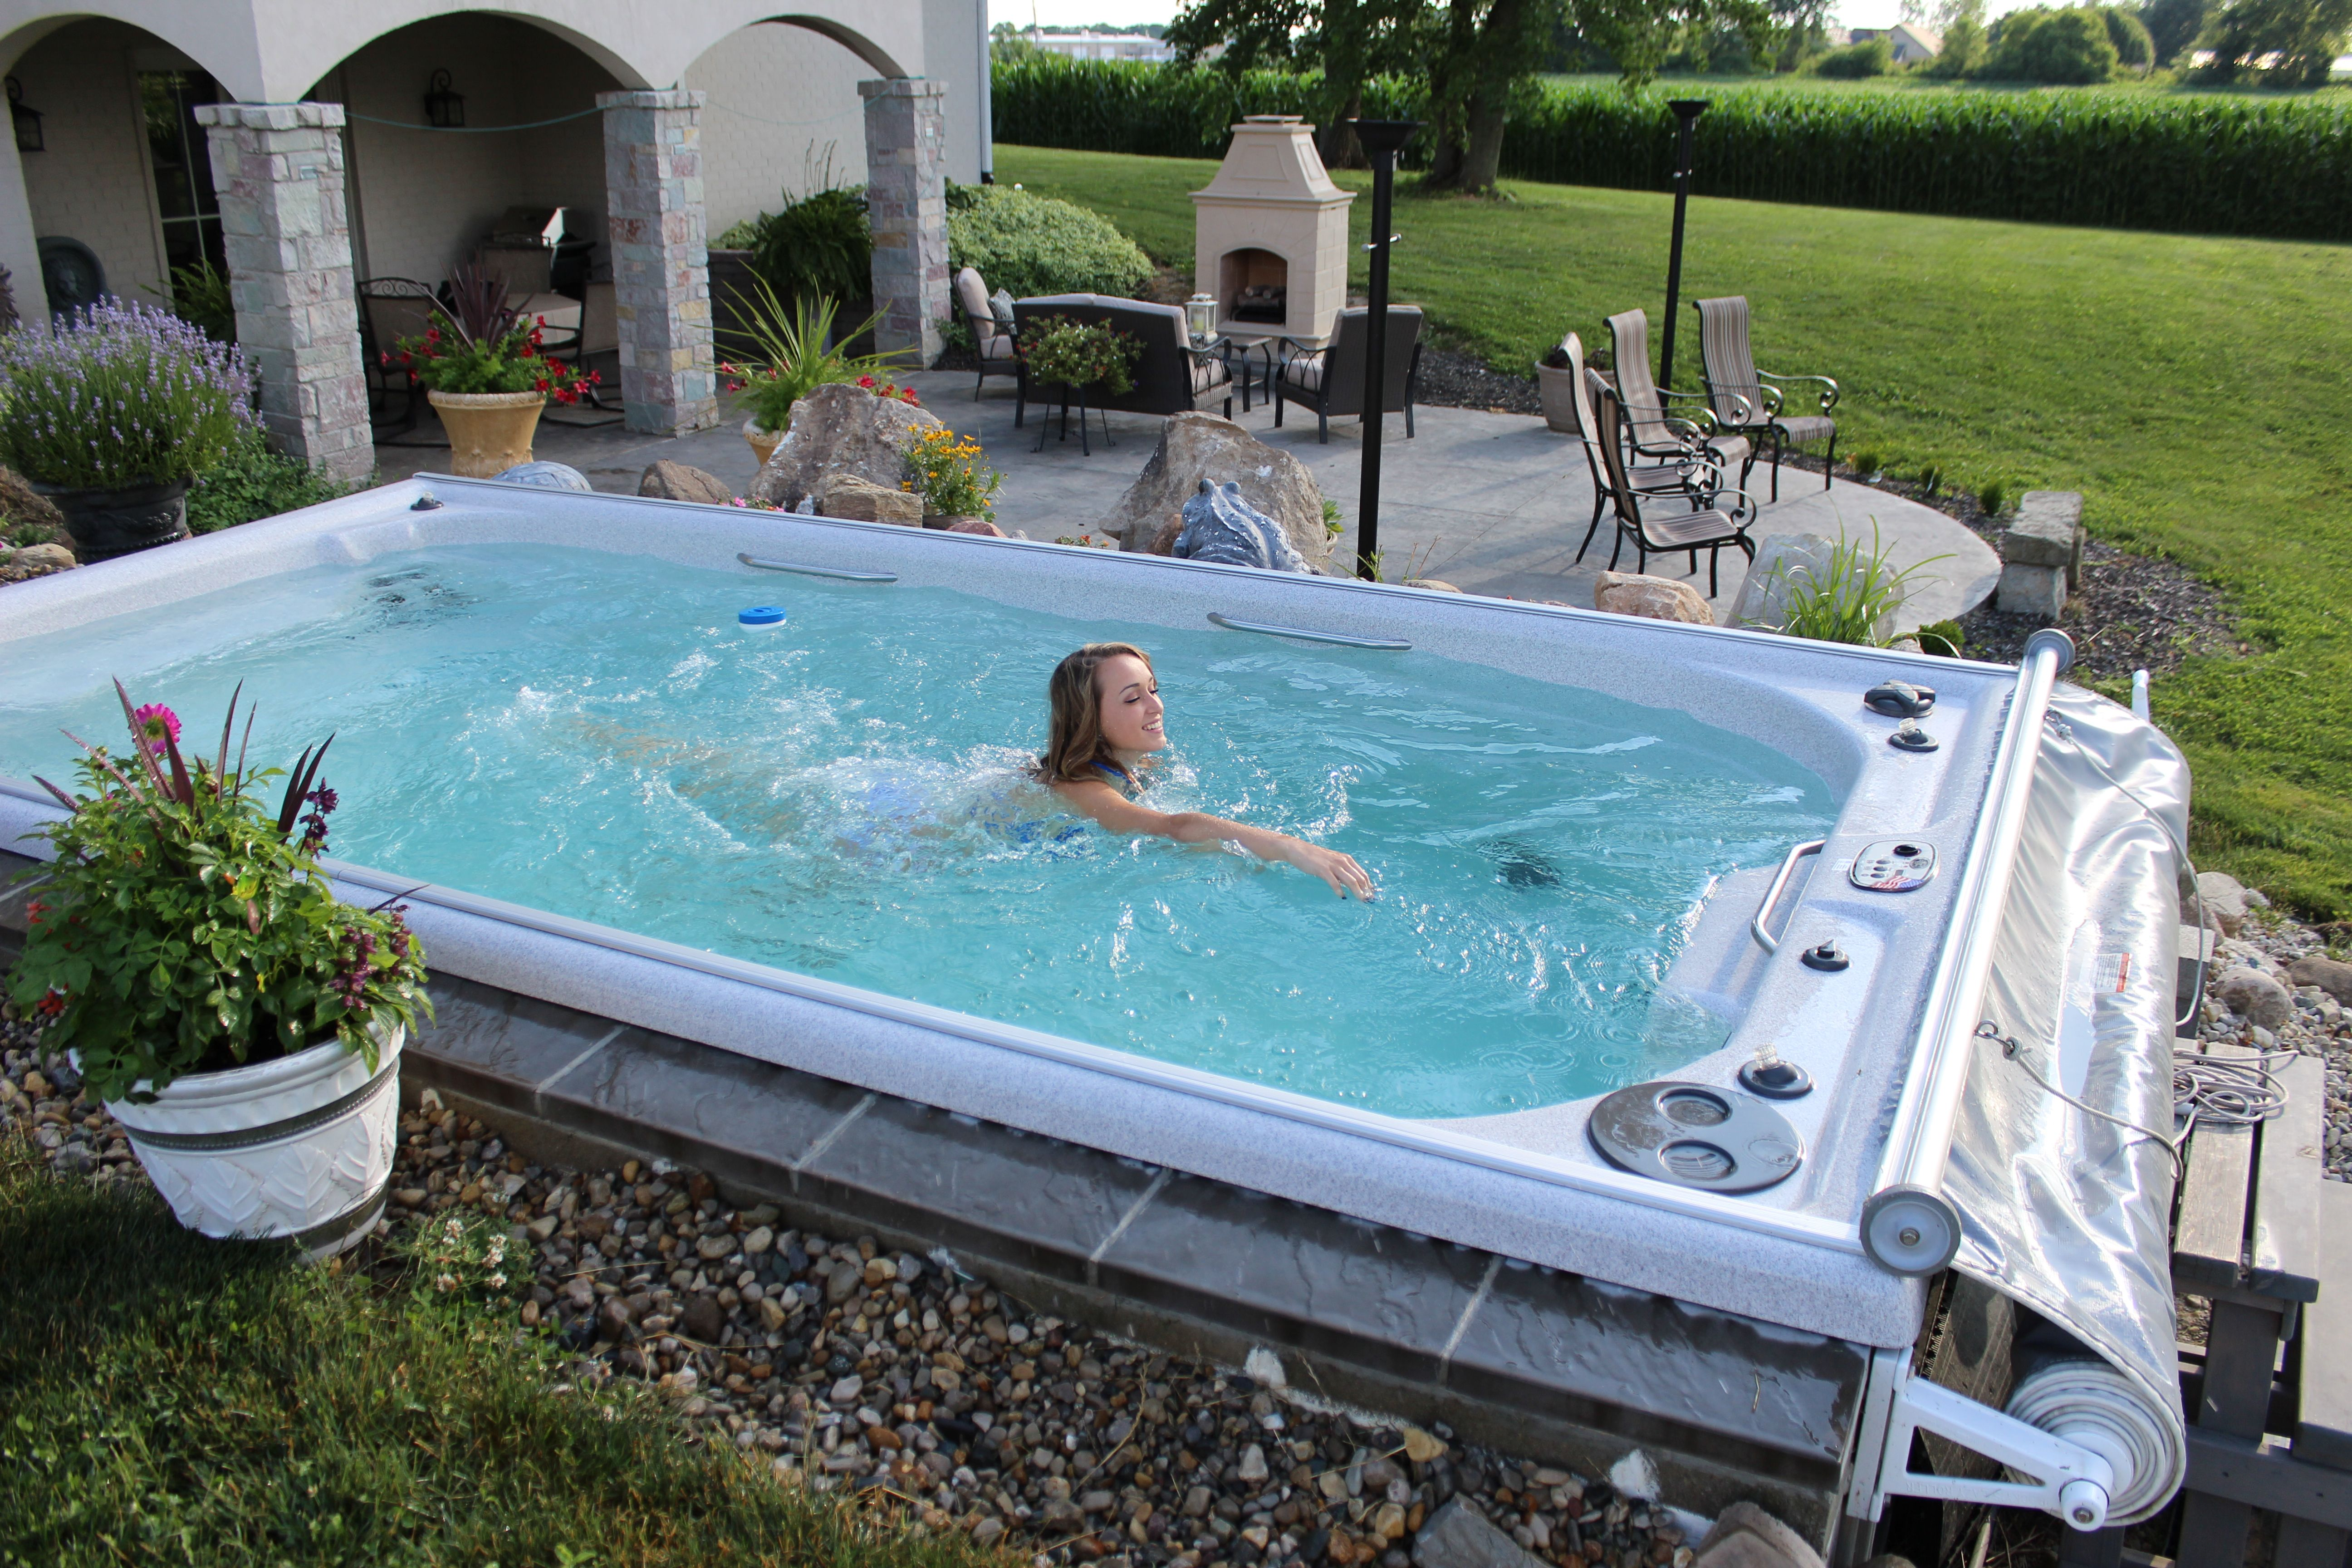 King Ultra Hot Tub Installation in Indianapolis | Royal Spa ...